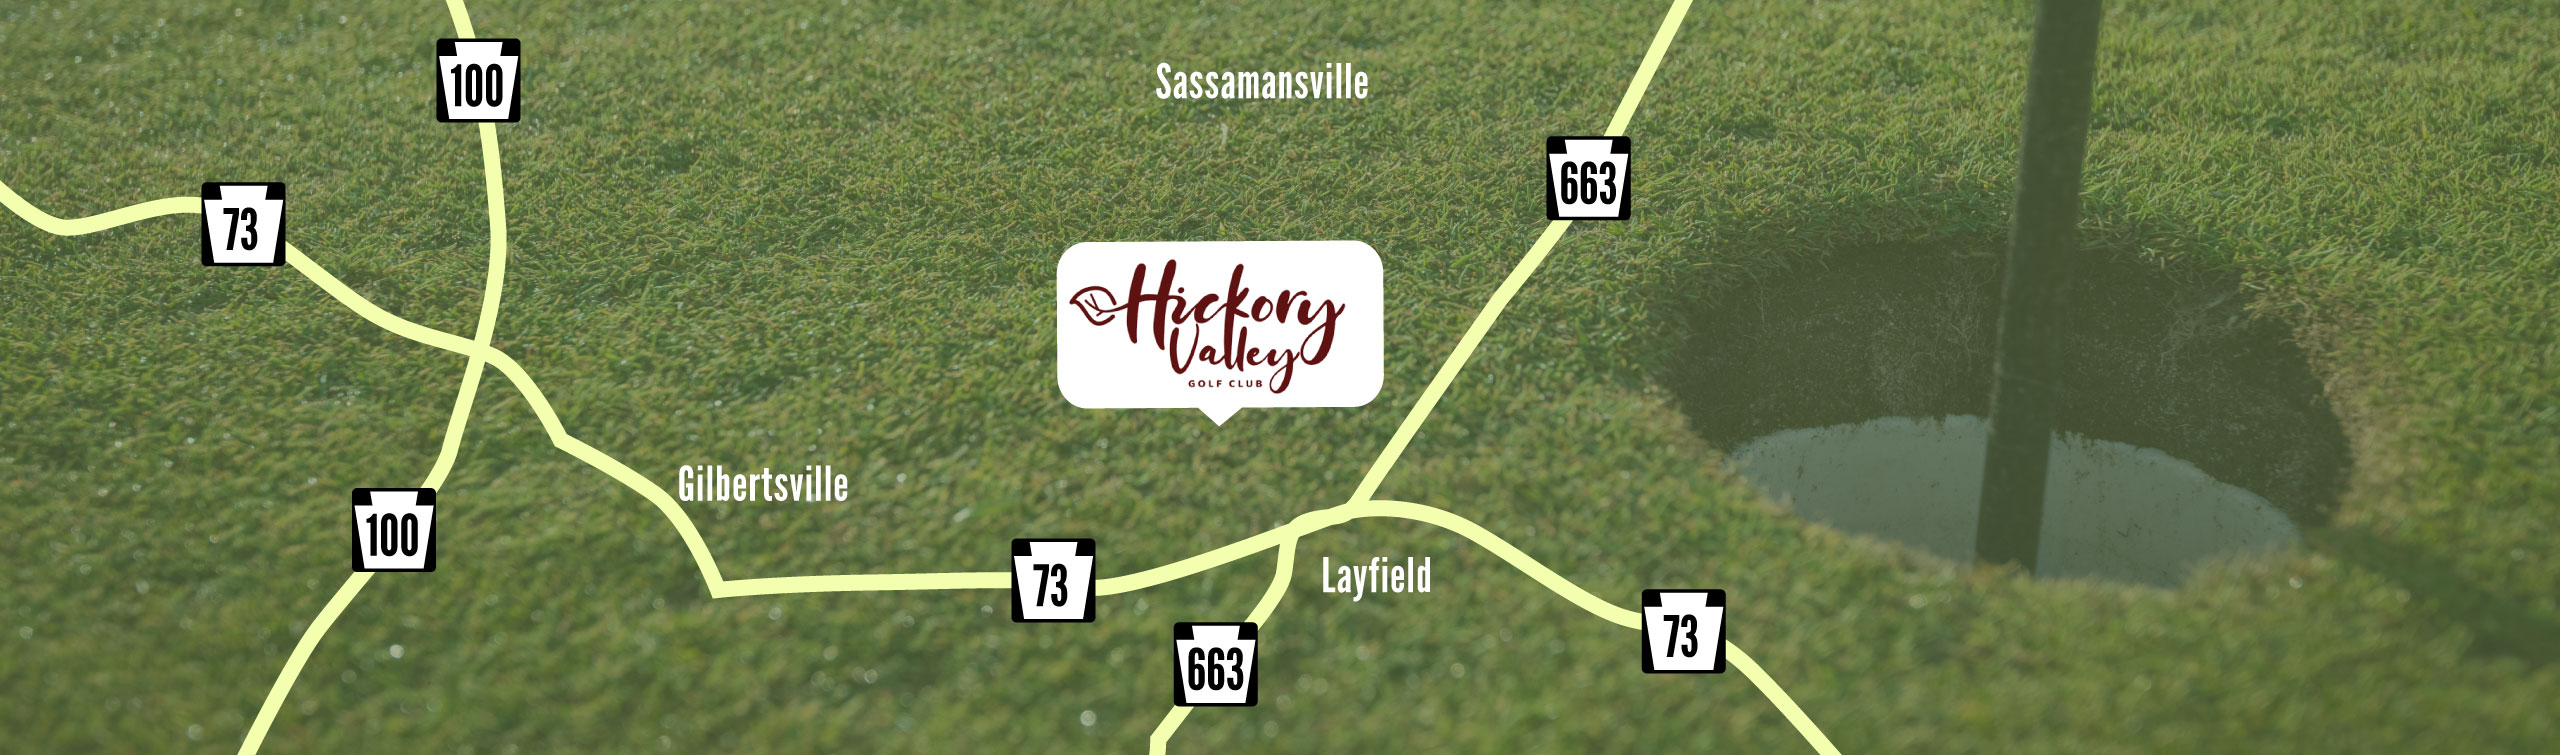 Map of Hickory Valley in Gilbertsville, PA